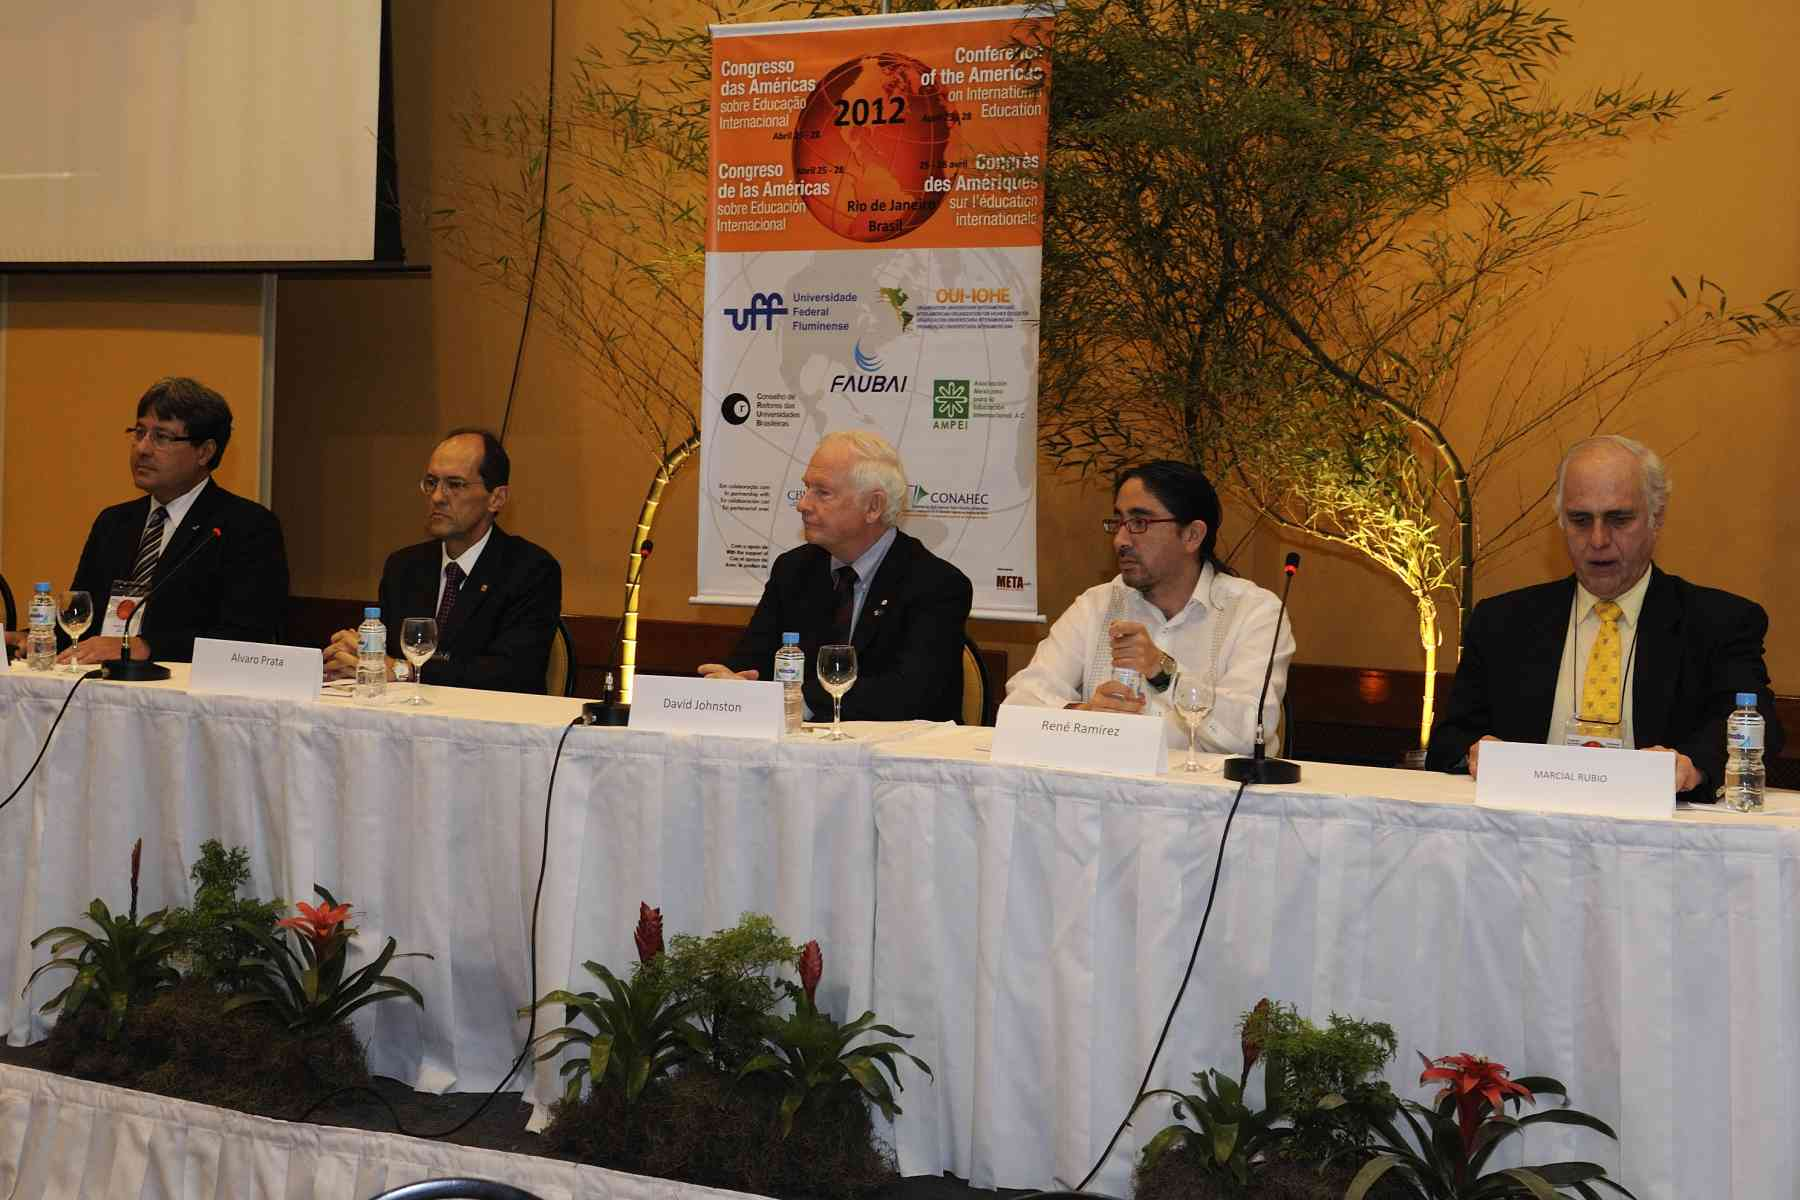 The CAIE aims to promote an inter-American exchange space for leaders of higher education institutions, namely to discuss priority issues concerning the internationalization of higher education, as well as its quality management.